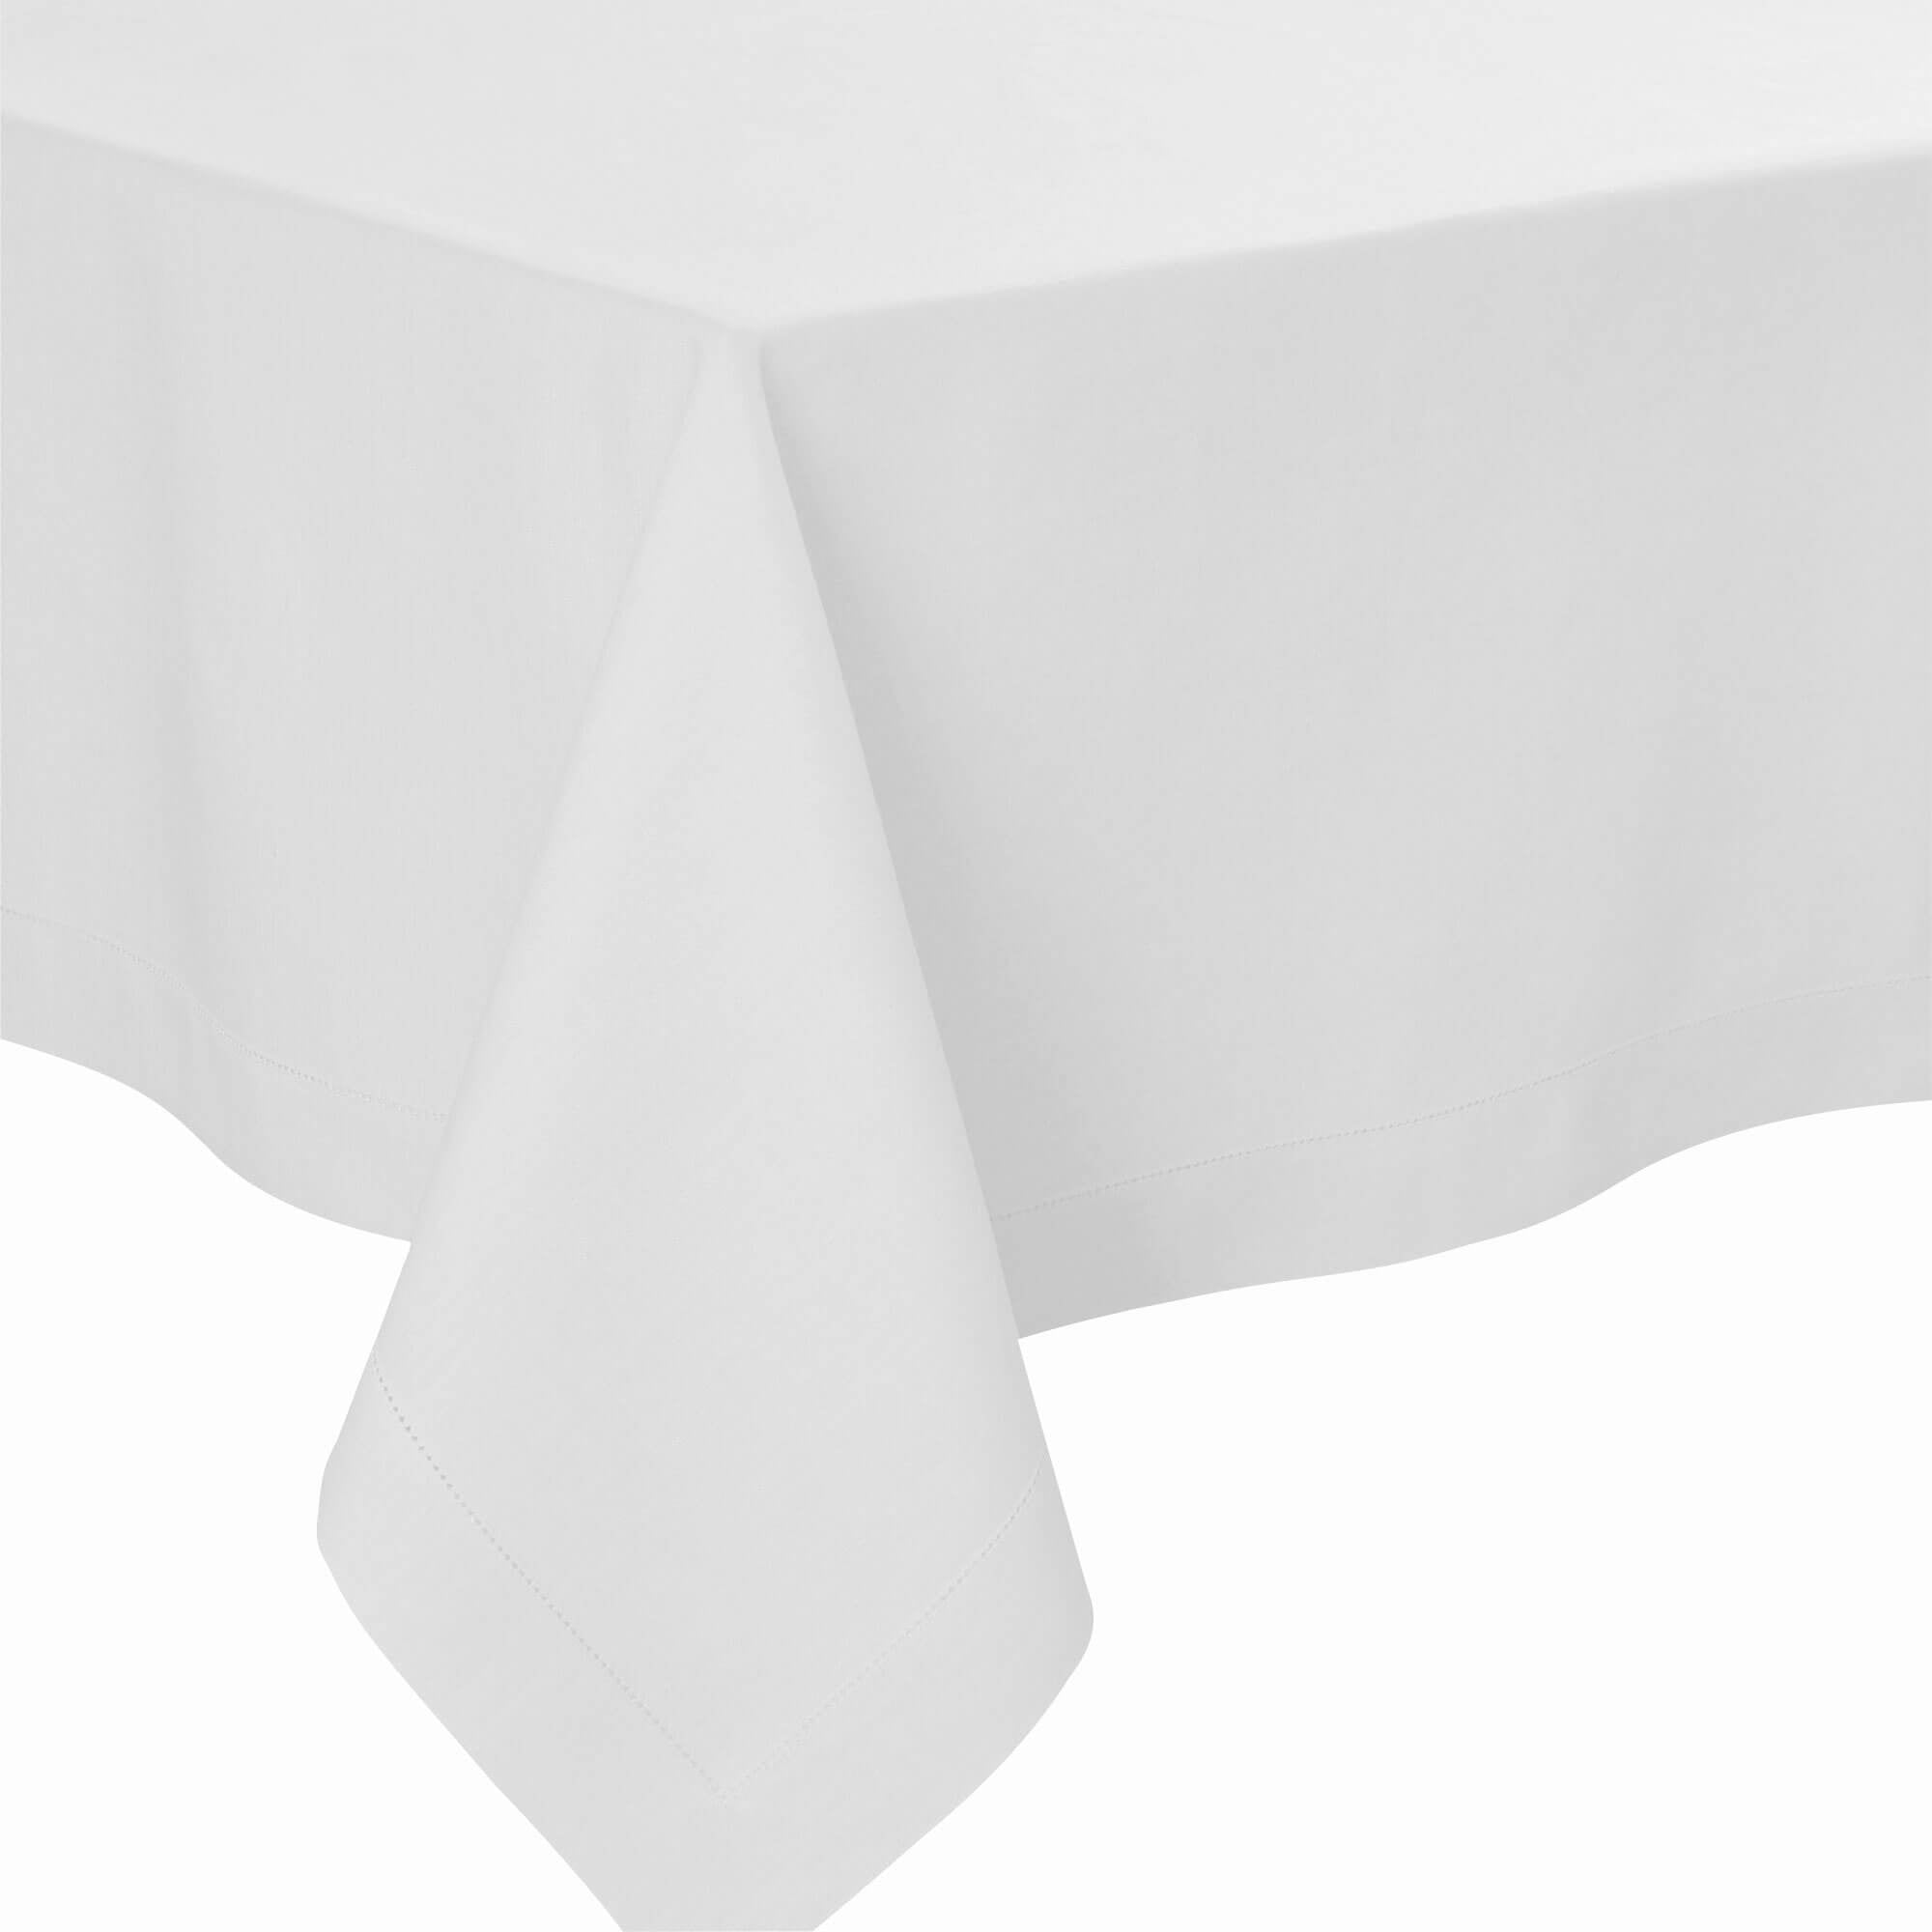 French Linen tablecloth - Hostaro Tableware